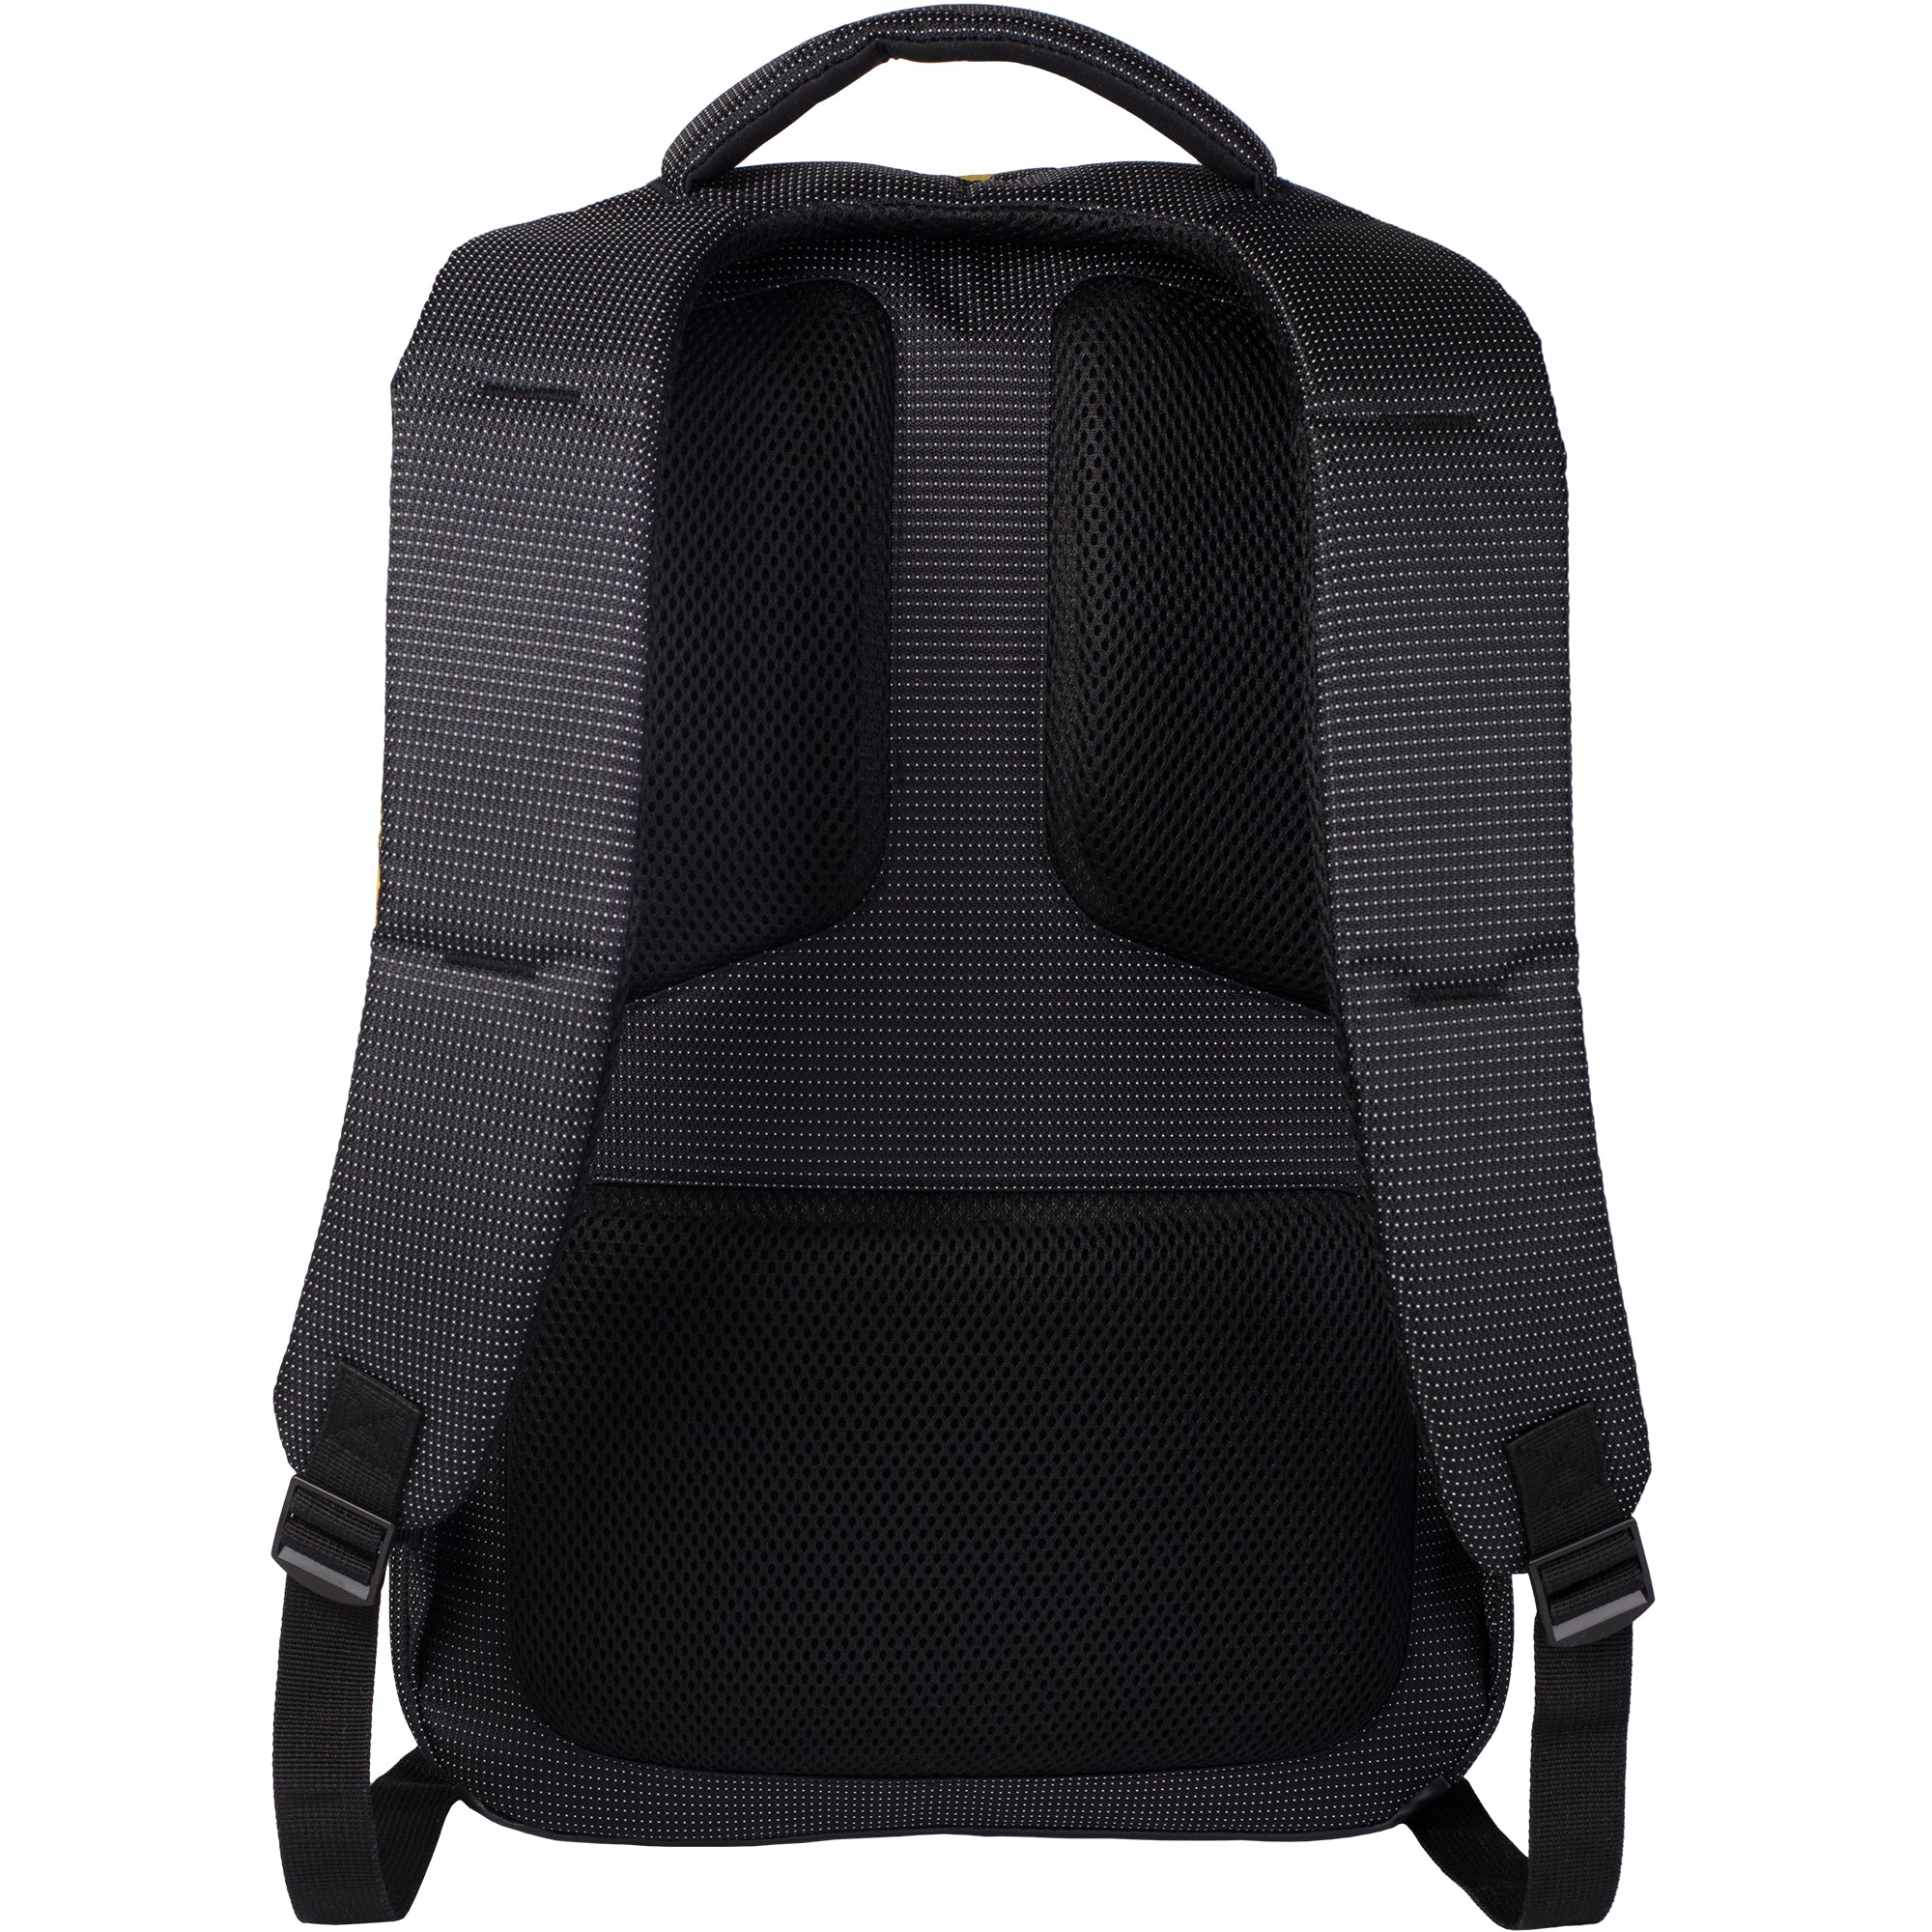 Kåbo Backpack